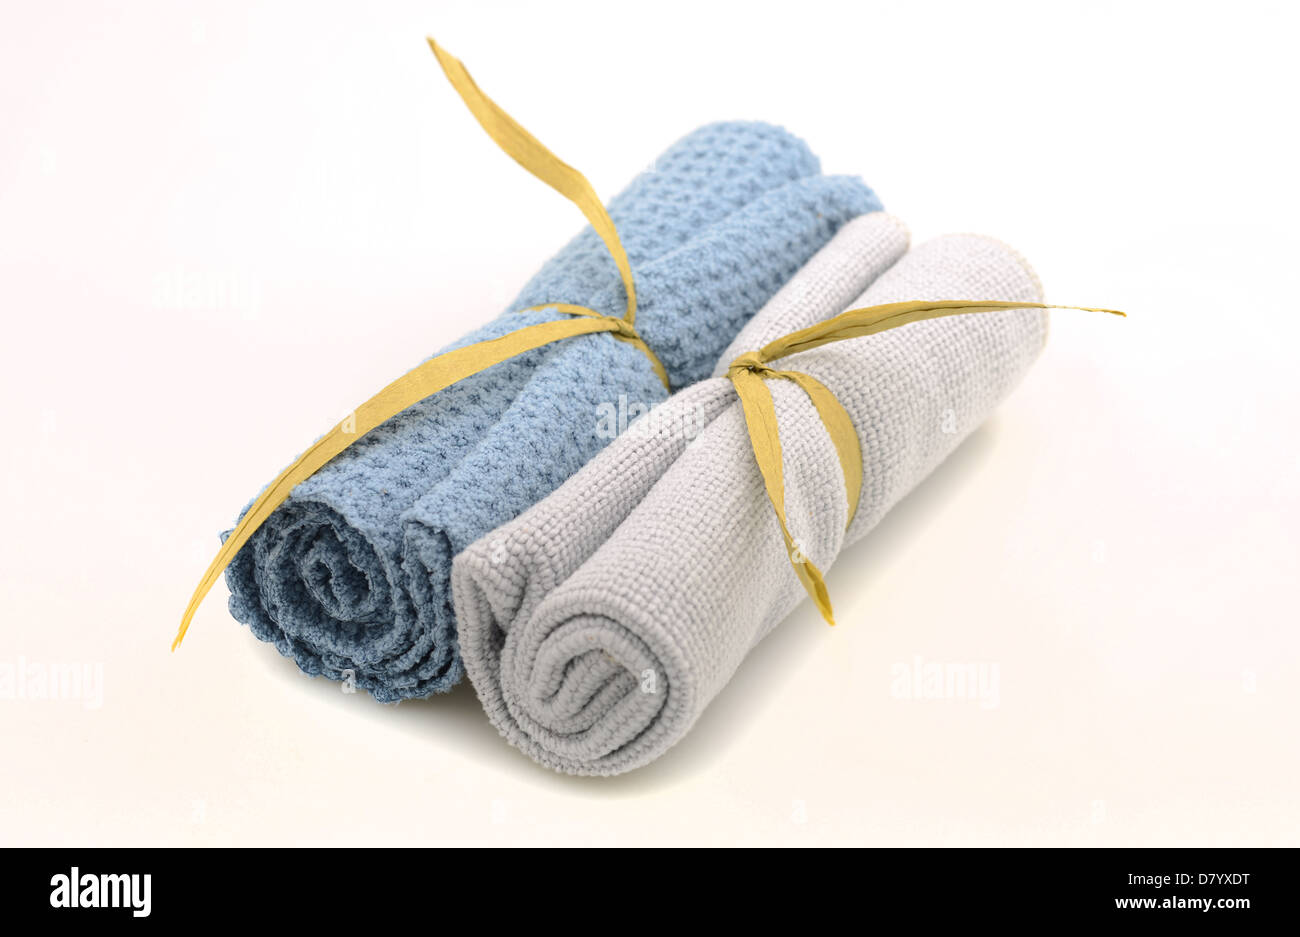 Wash cloths rolled up for spa treatment on white background Stock Photo